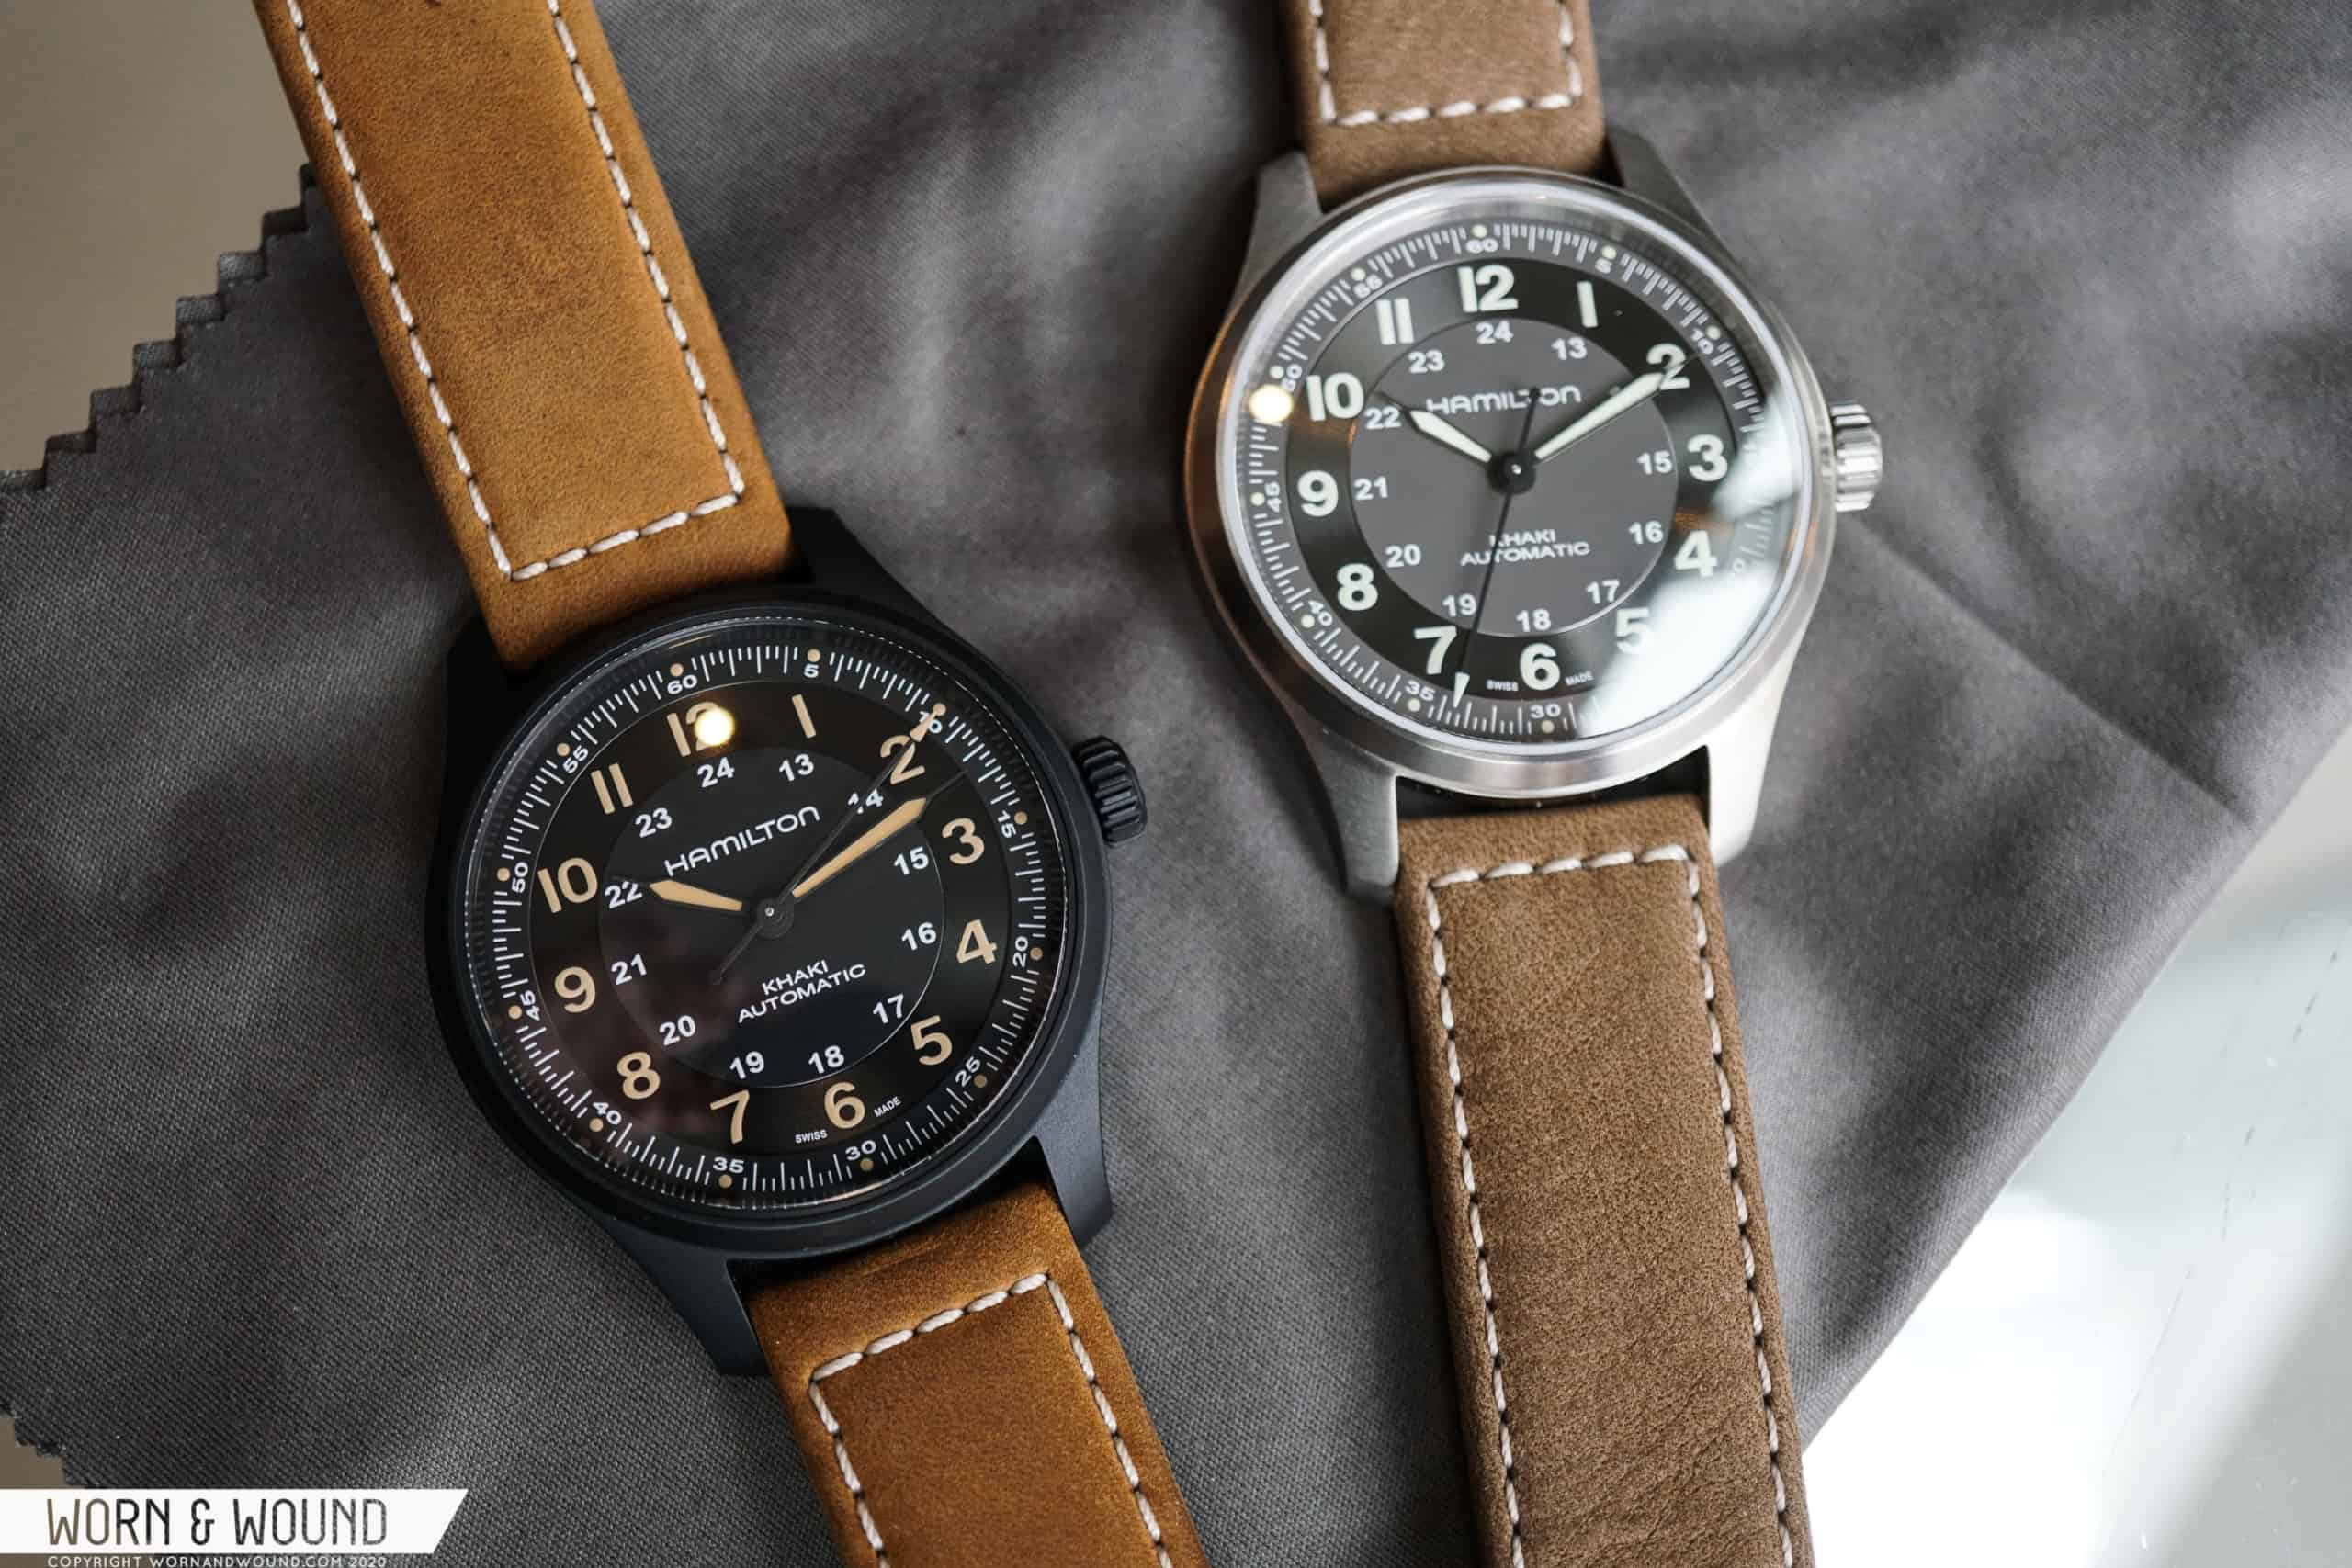 Hamilton's Latest Field Watch Mixes Old and New in Titanium